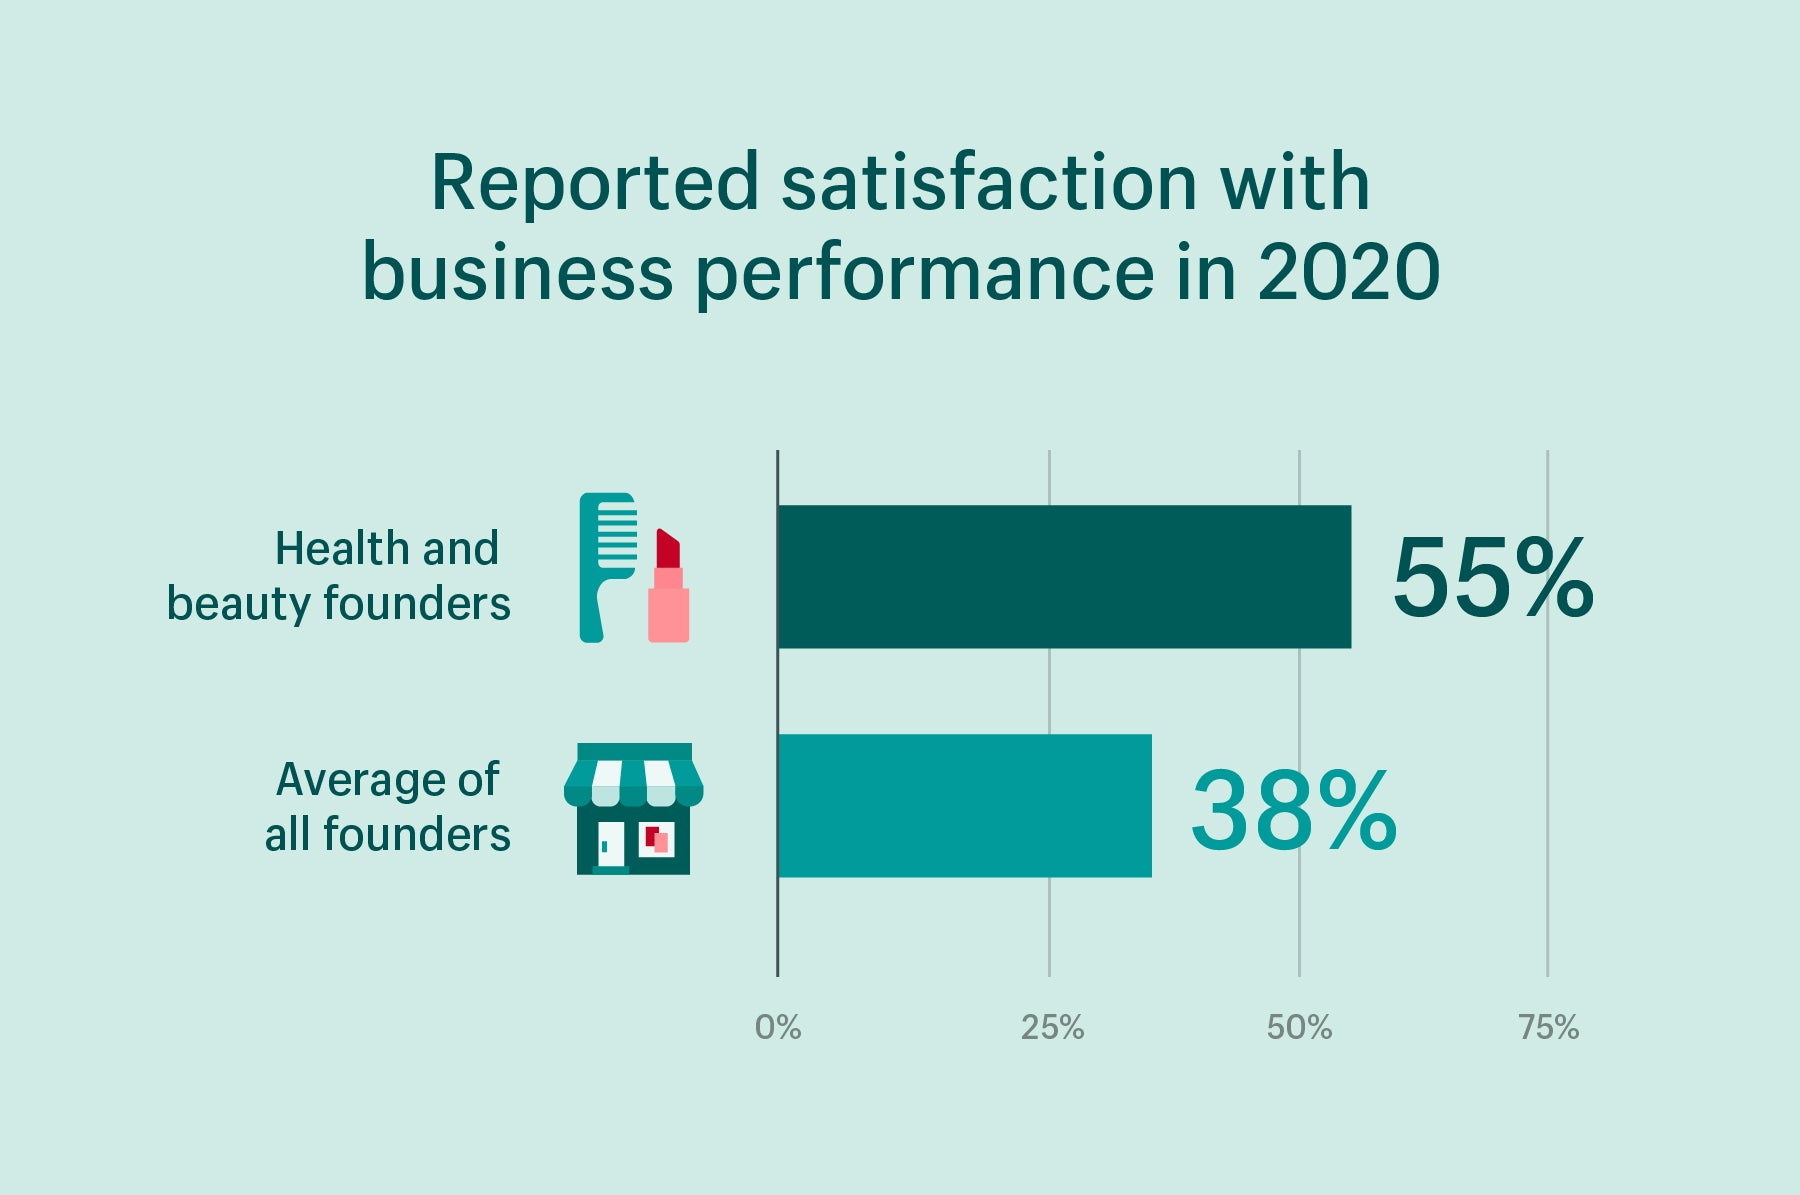 55% of health and beauty businesses were satisfied with performance in 2020